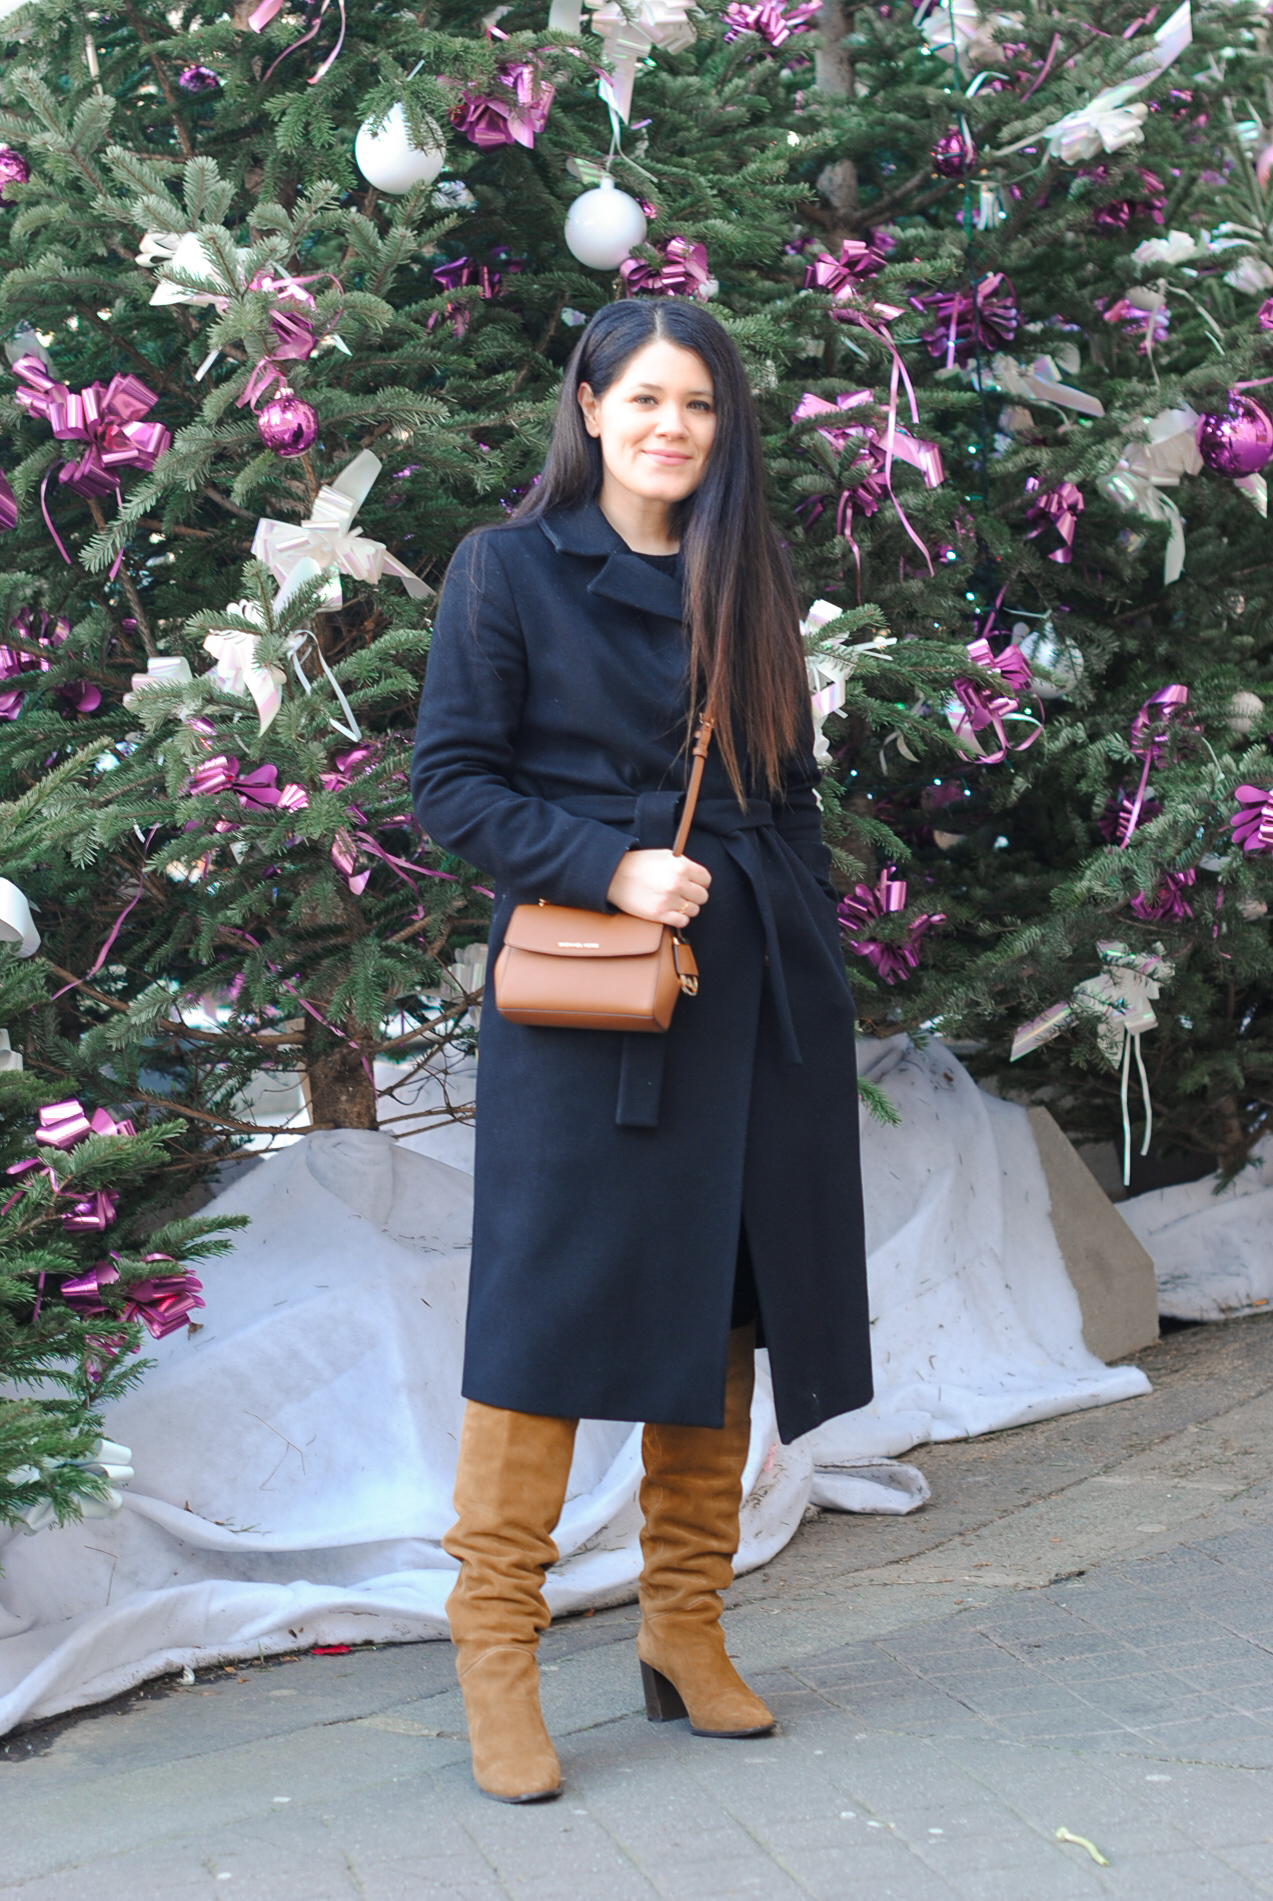 20210110-OUTFIT-BOLSO-MICHAEL KORS-03